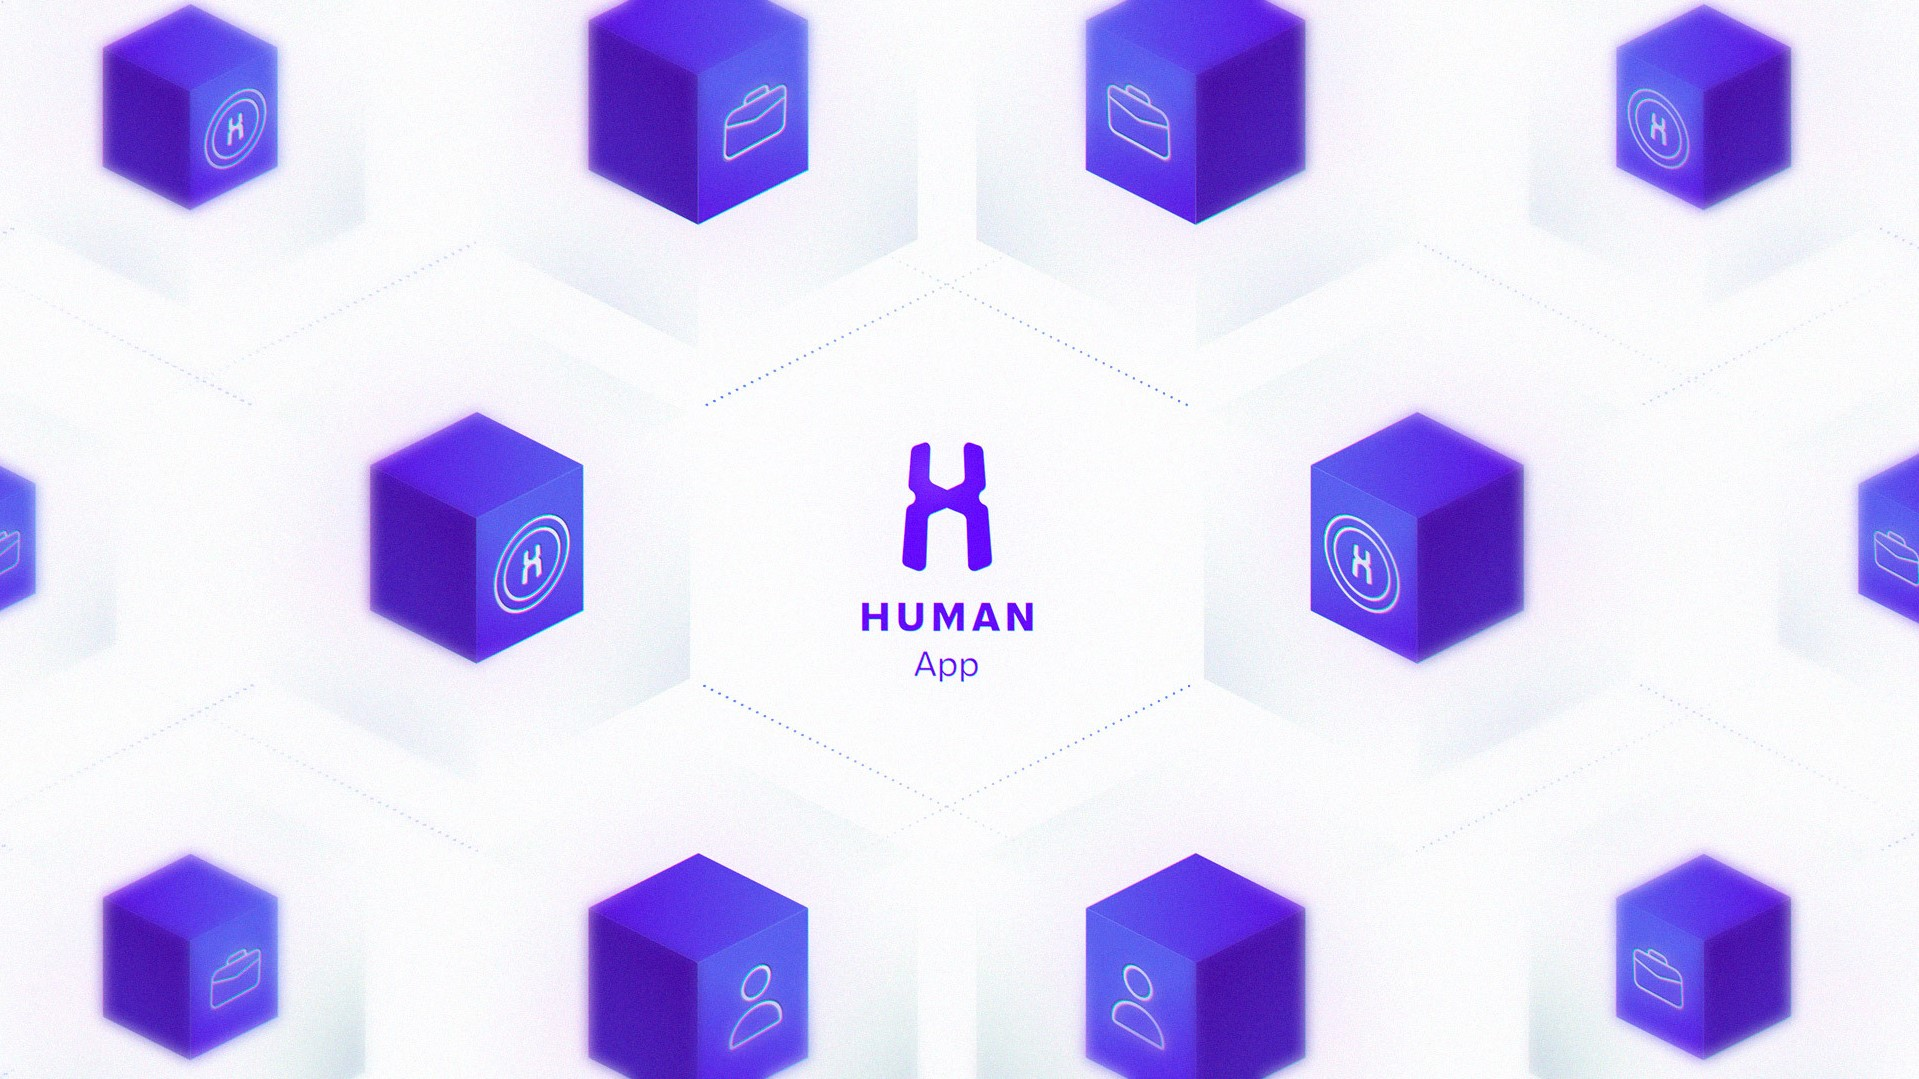 The HUMAN App Delivers Real-World Utility to HMT and the HUMAN Ecosystem